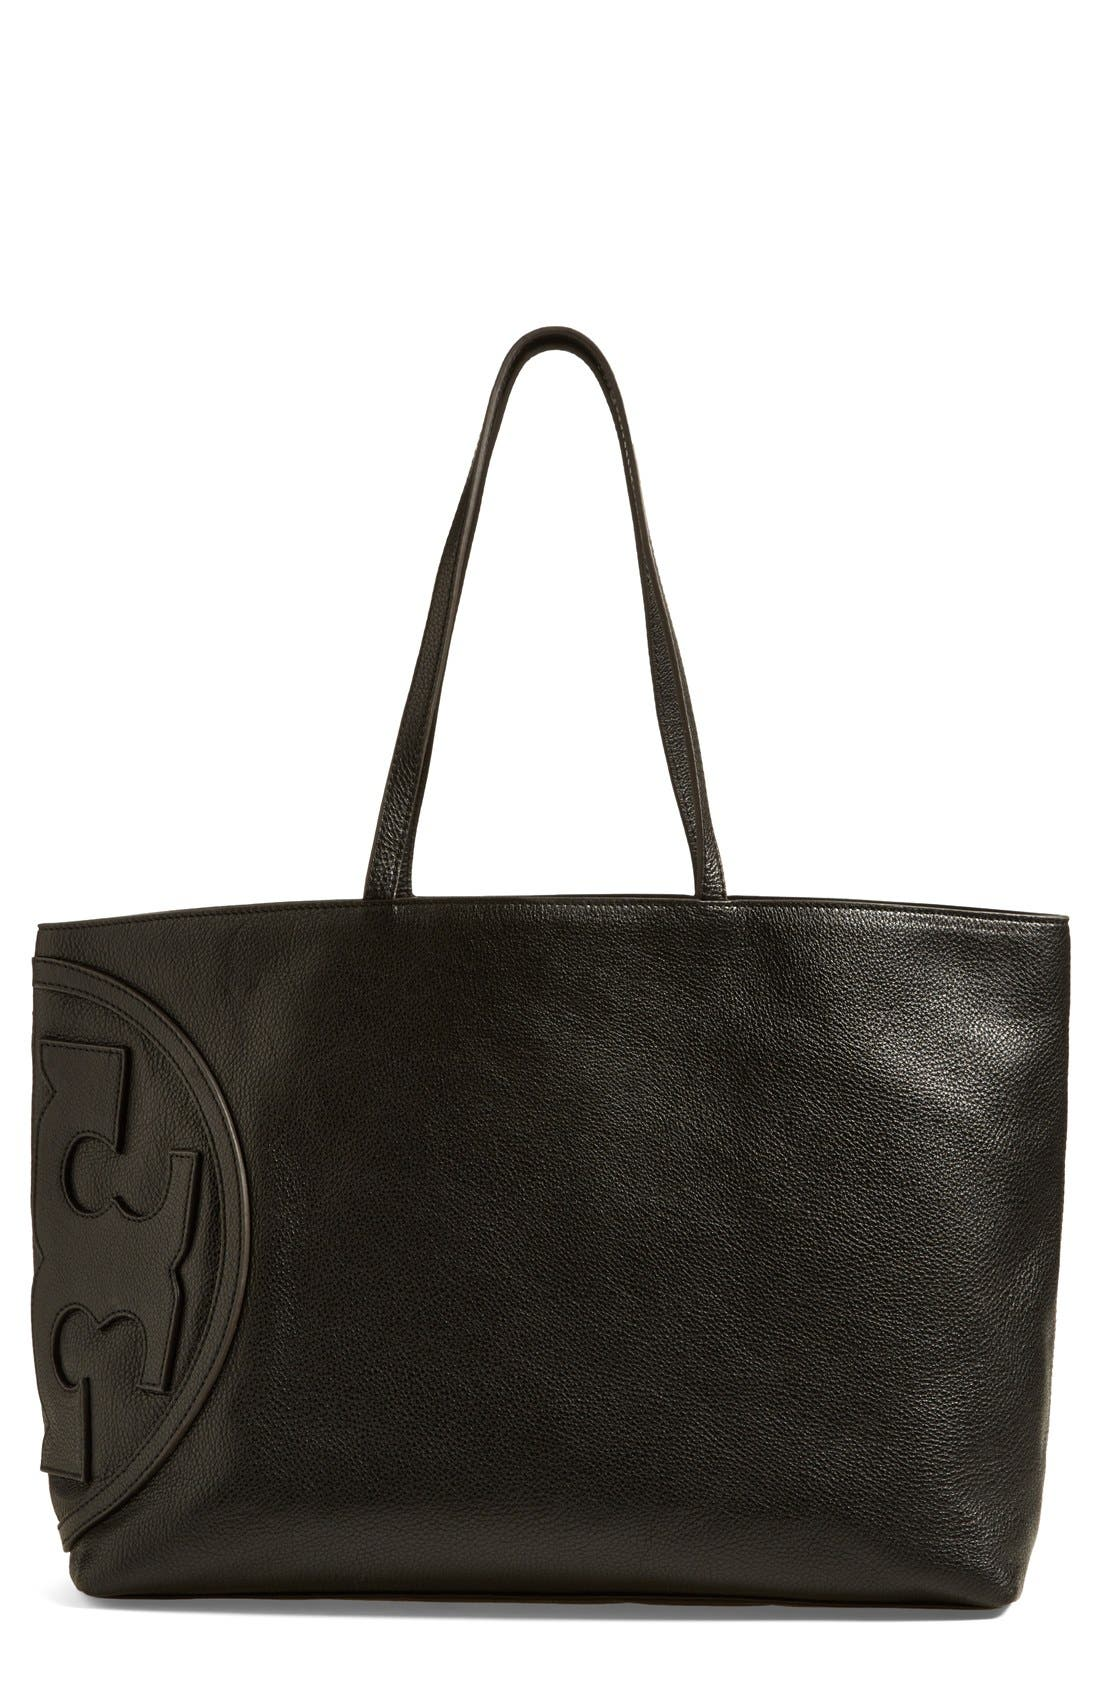 Main Image - Tory Burch 'All T' East/West Tote